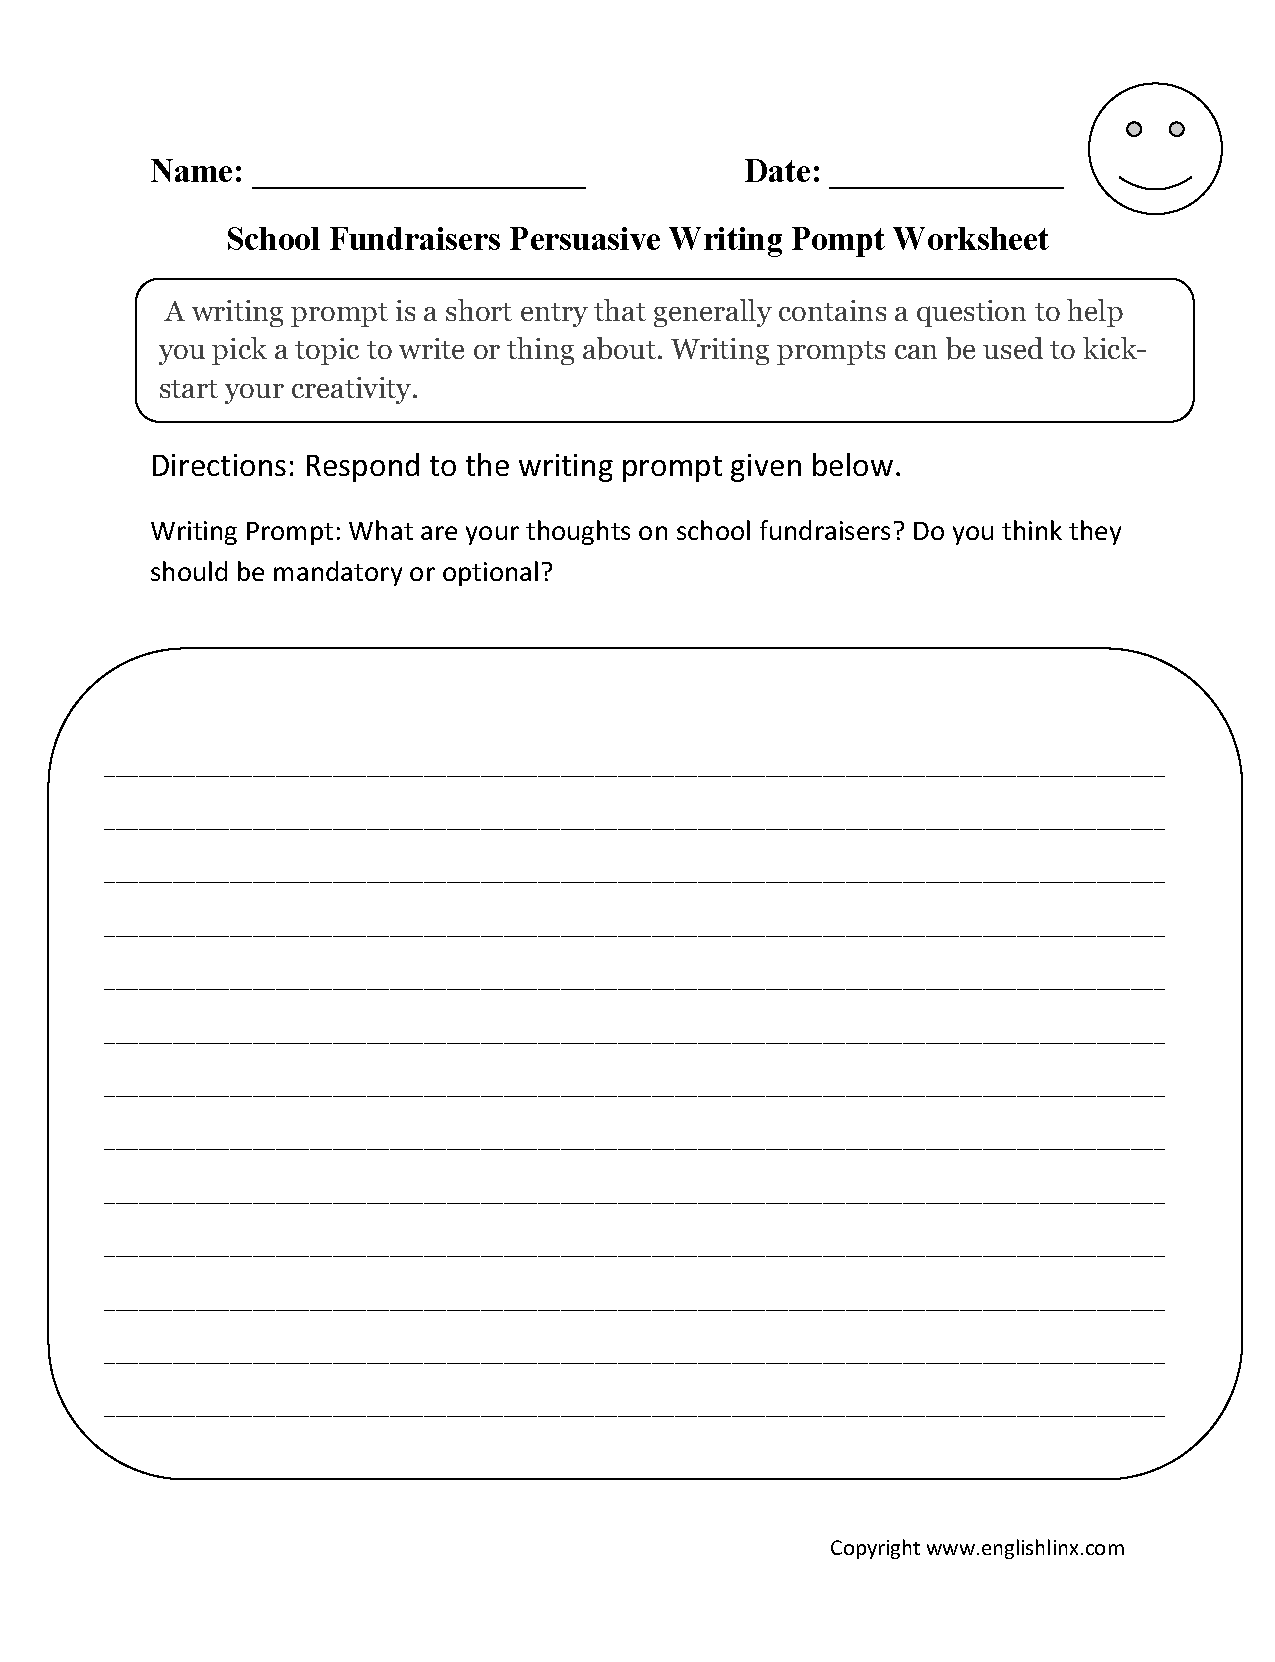 Fundraisers Persuasive Writing Prompt Worksheet